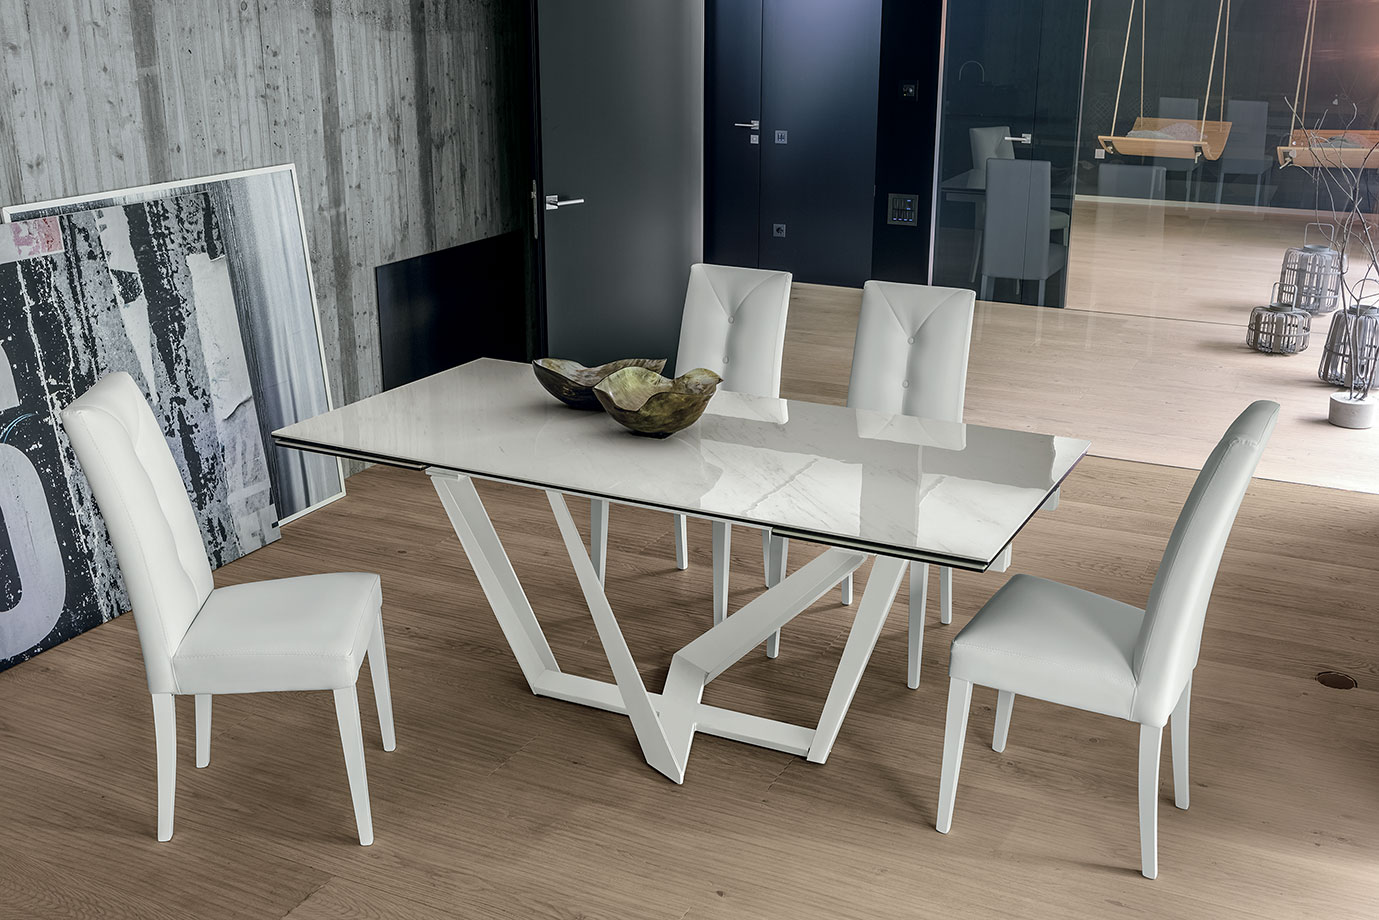 PRIAMO Table • Target Point